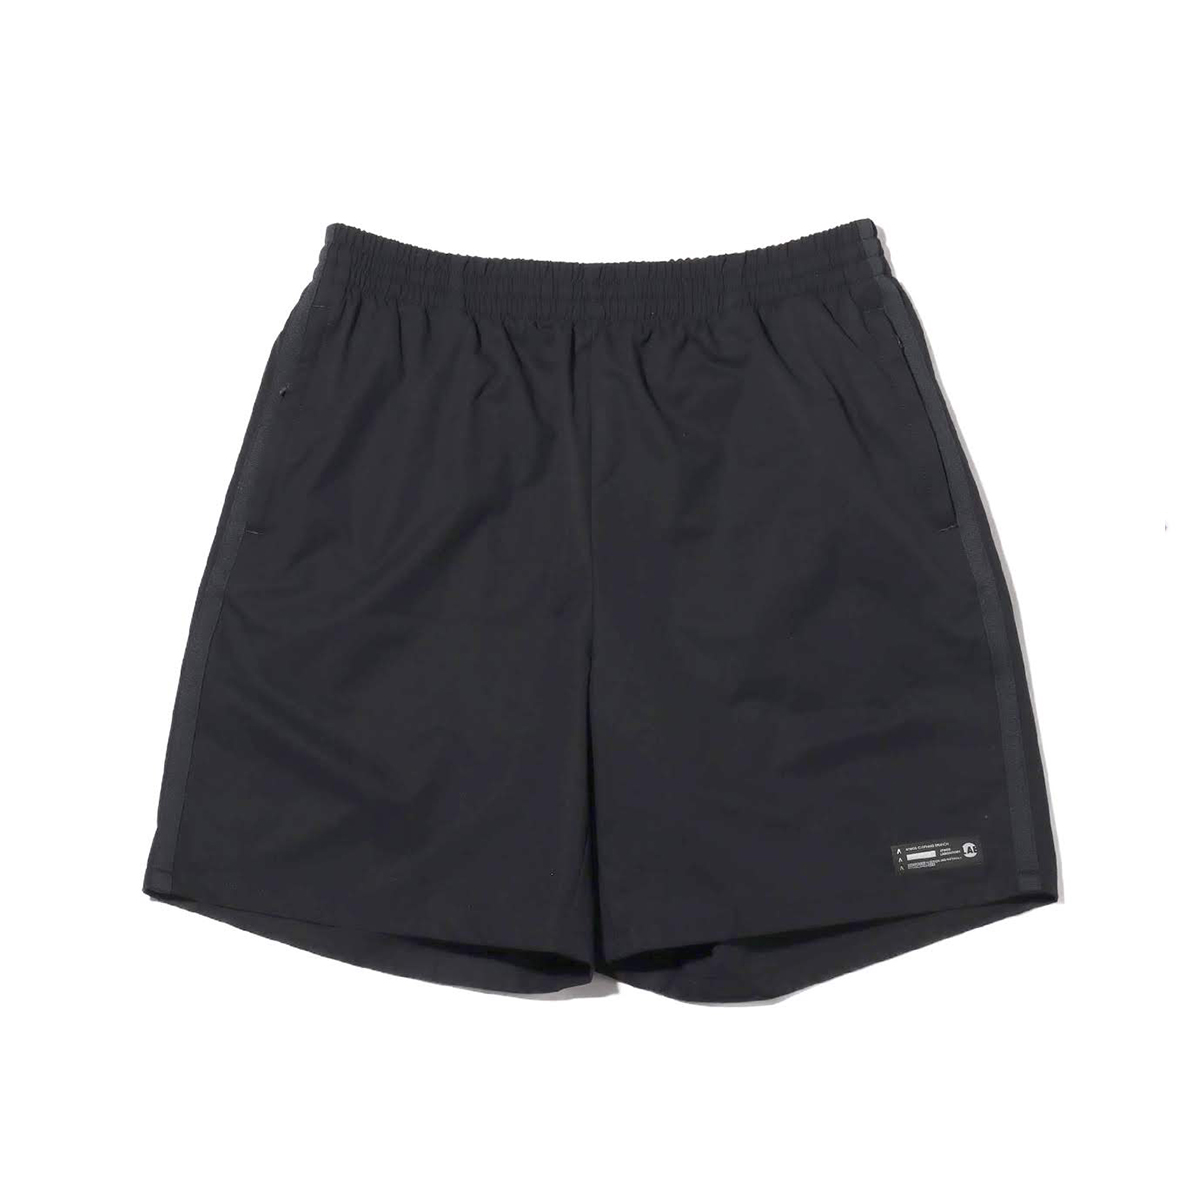 DESCENTE ddd X ATMOS LAB TRACK SHORTS